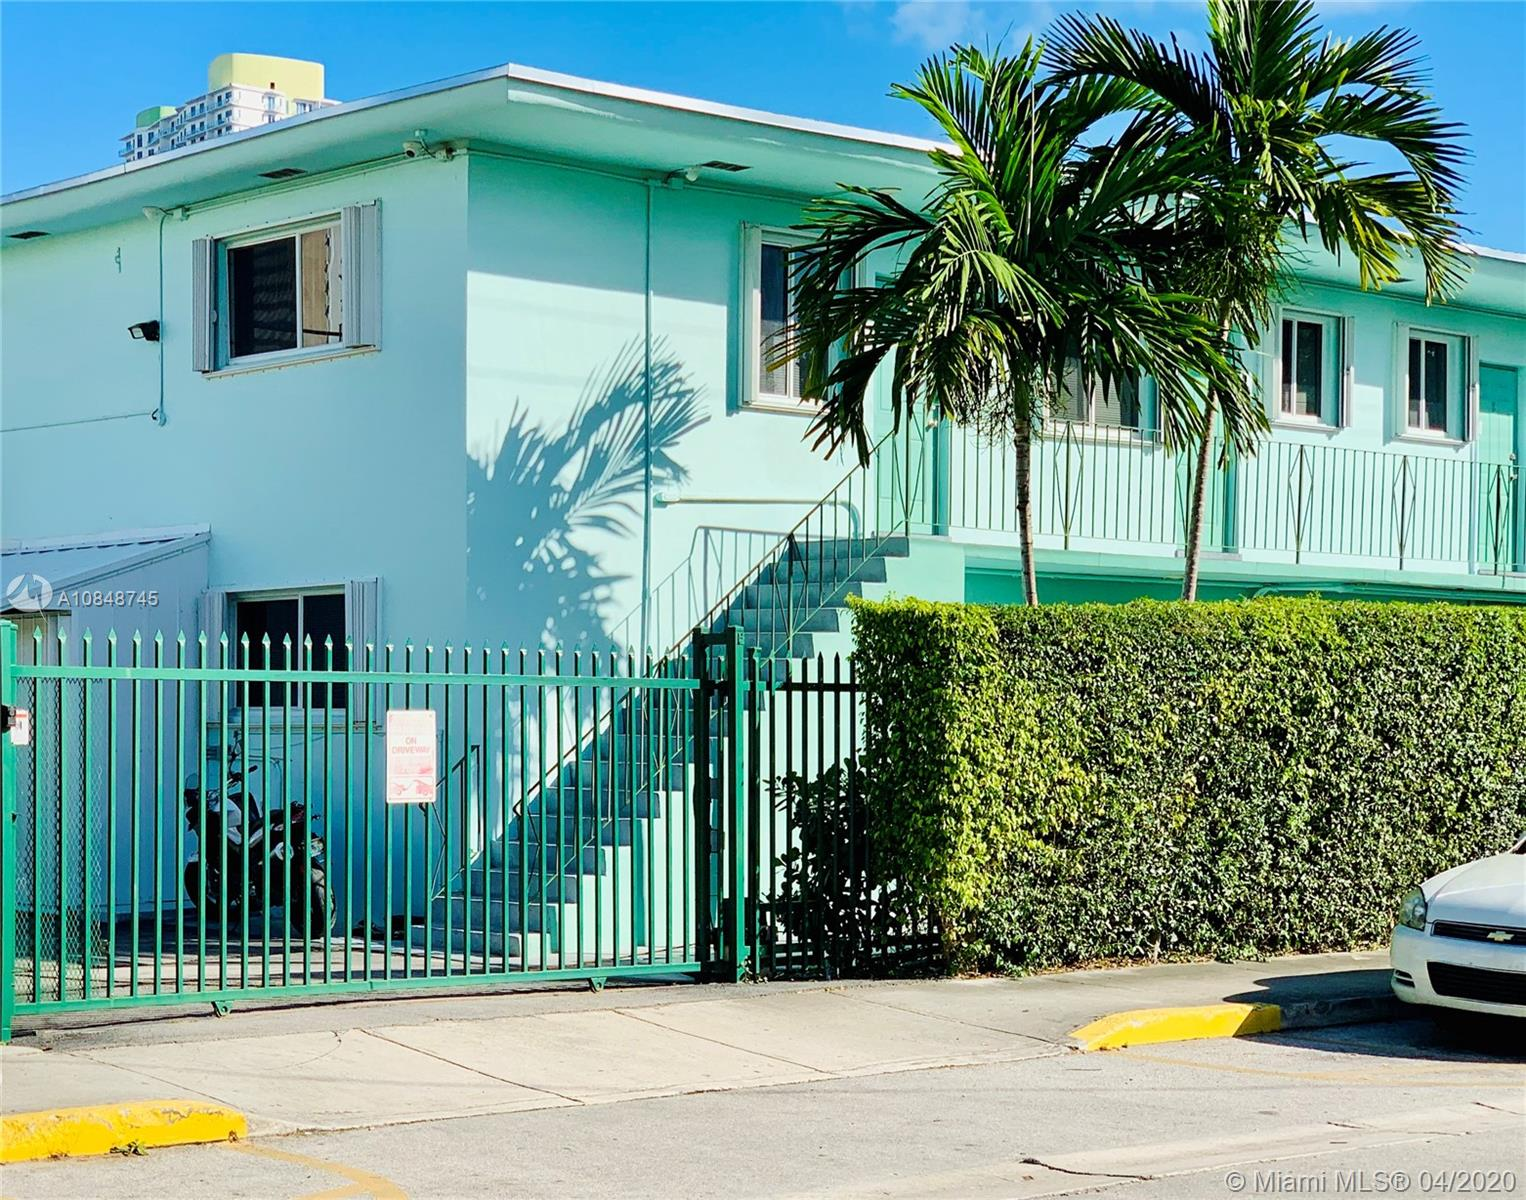 469 SW 3rd St #5 For Sale A10848745, FL